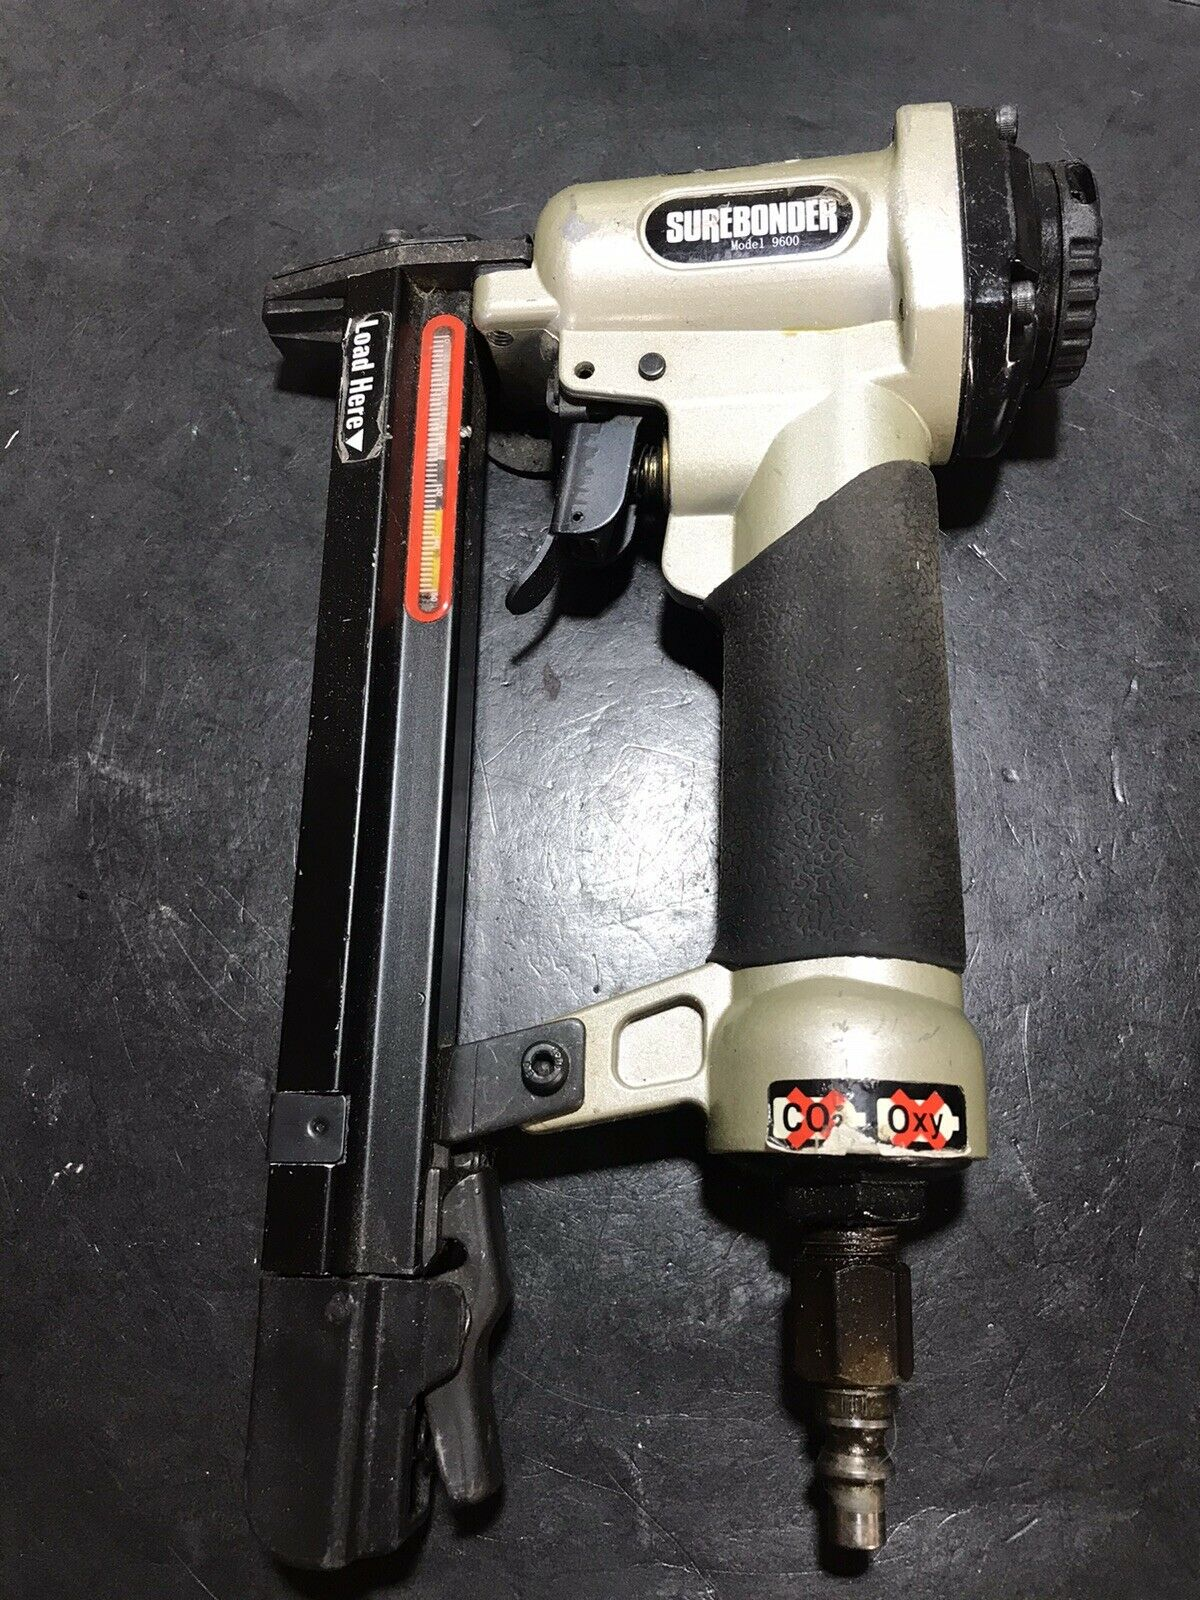 SUREBONDER Model 9600 Pneumatic Stapler Tested Functions Properly Used. Available Now for 25.95